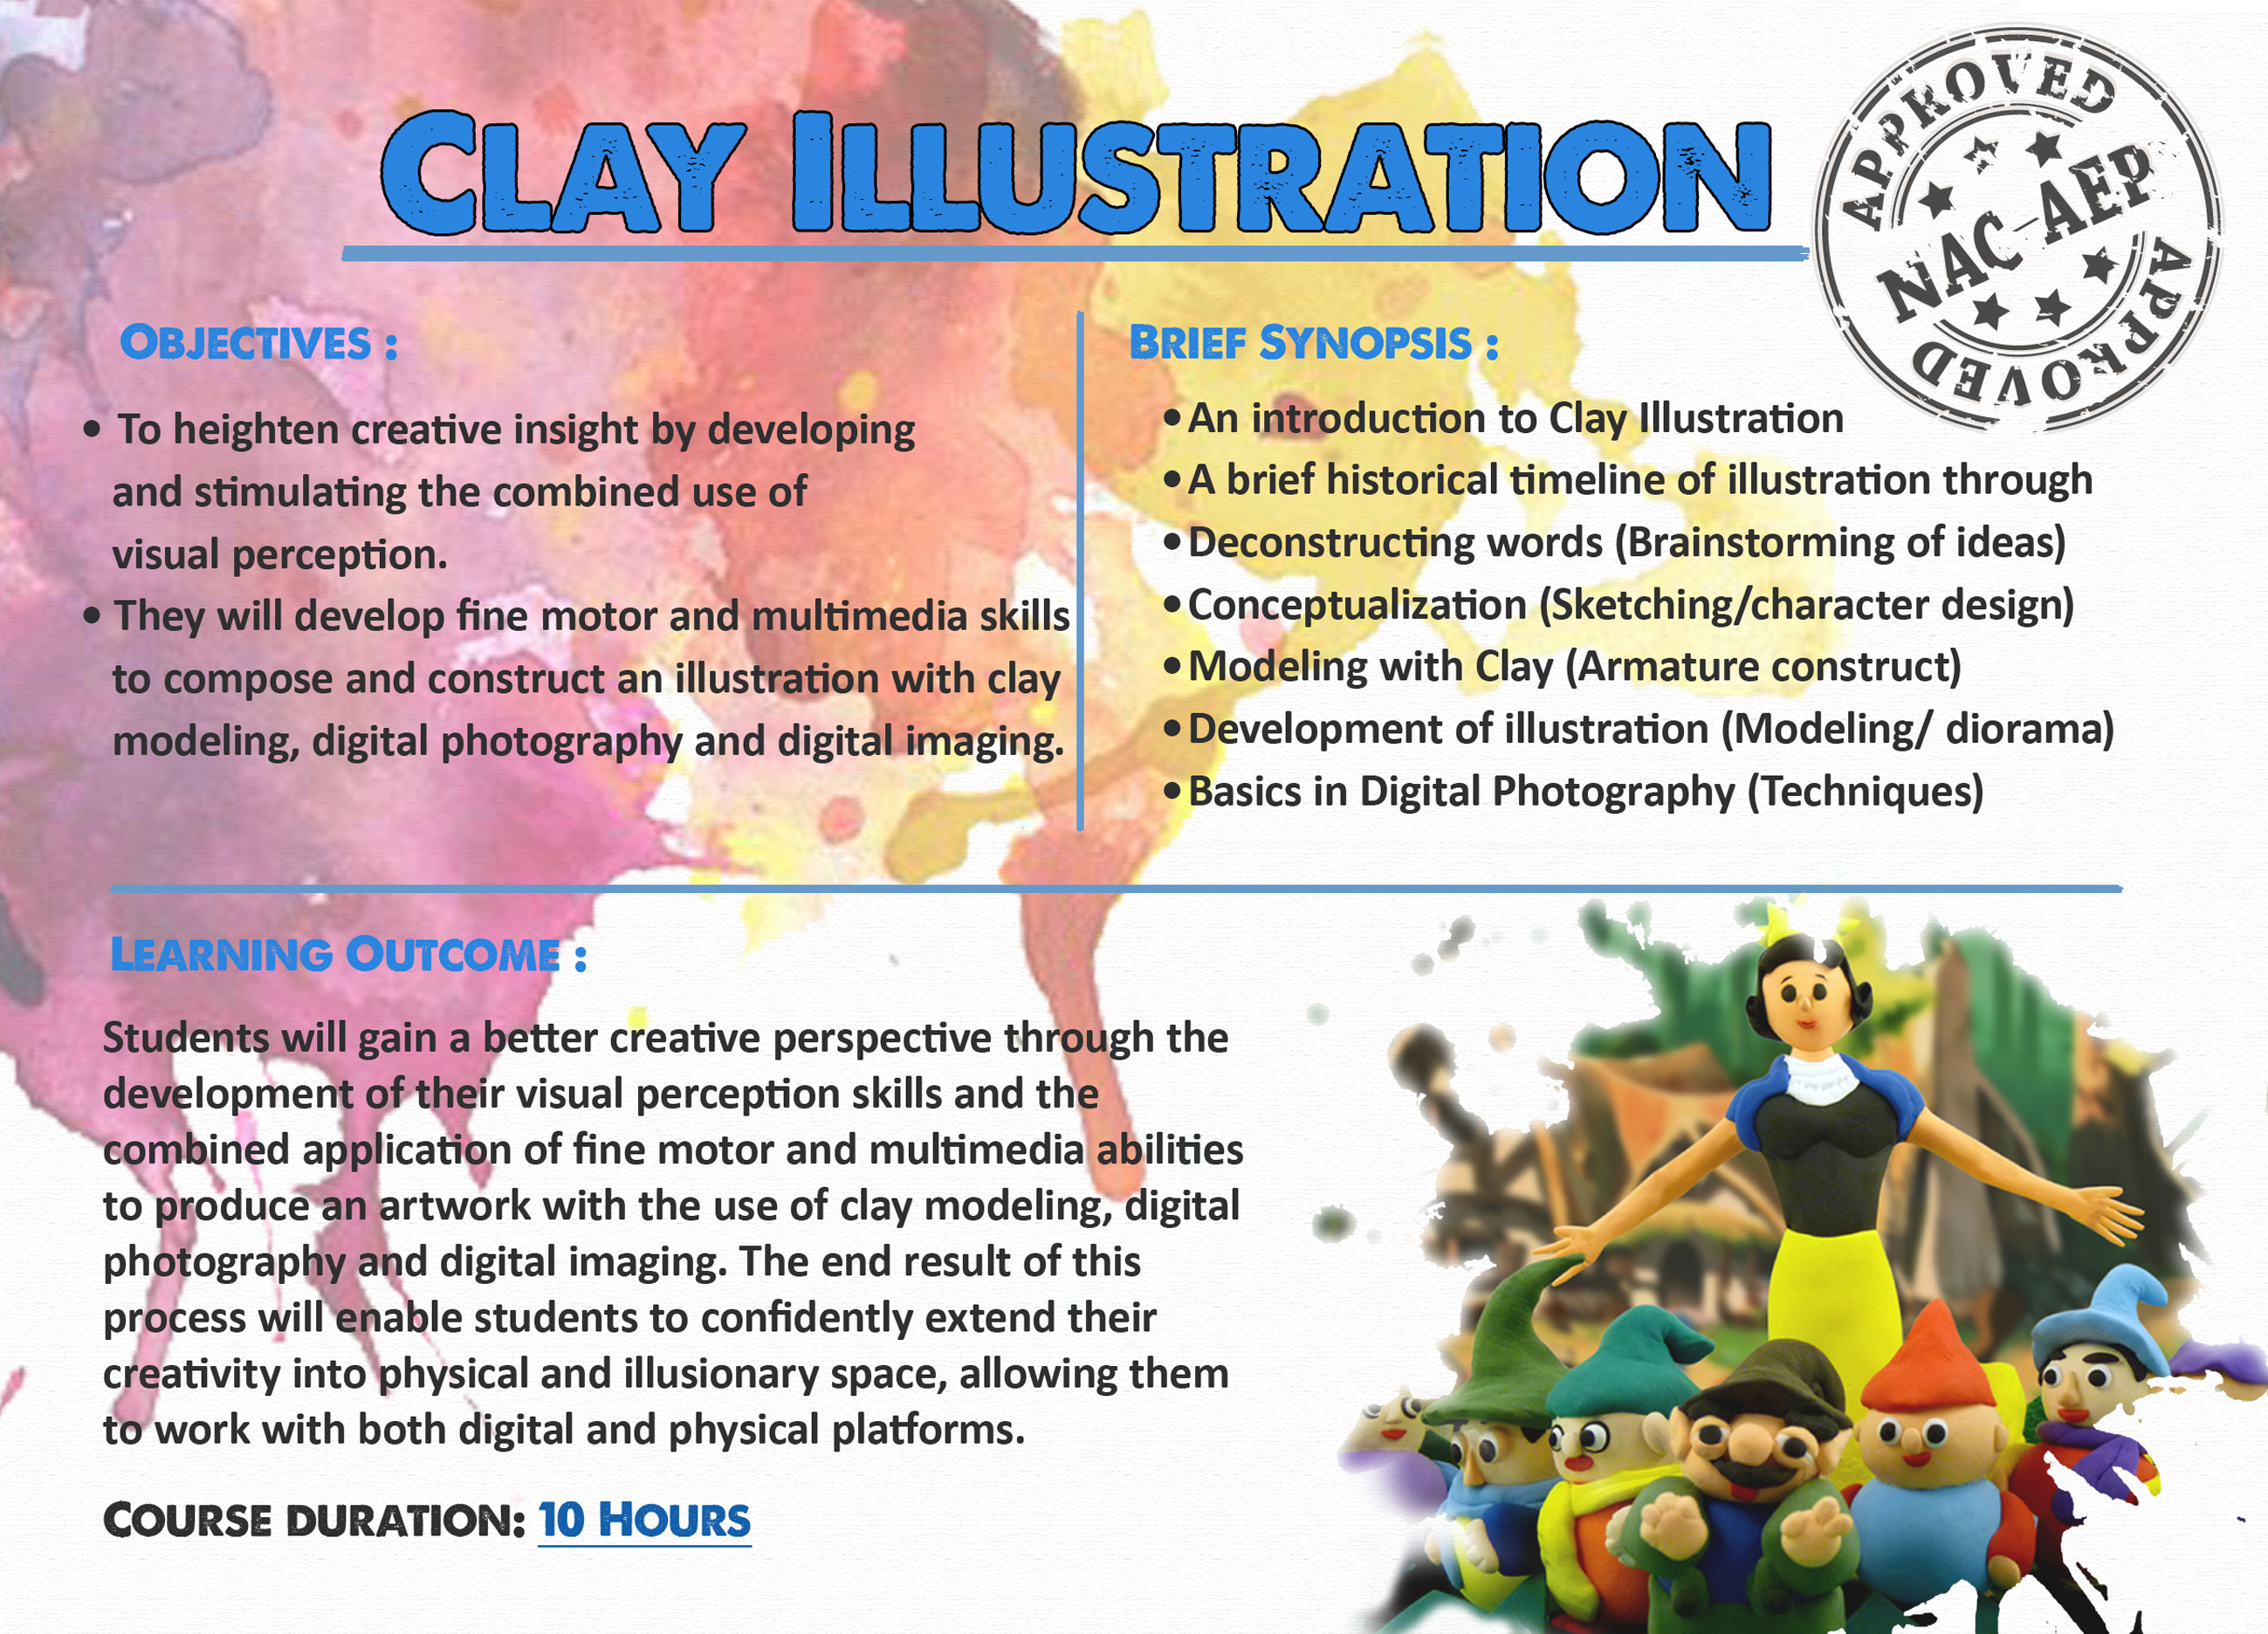 Clay Illustration